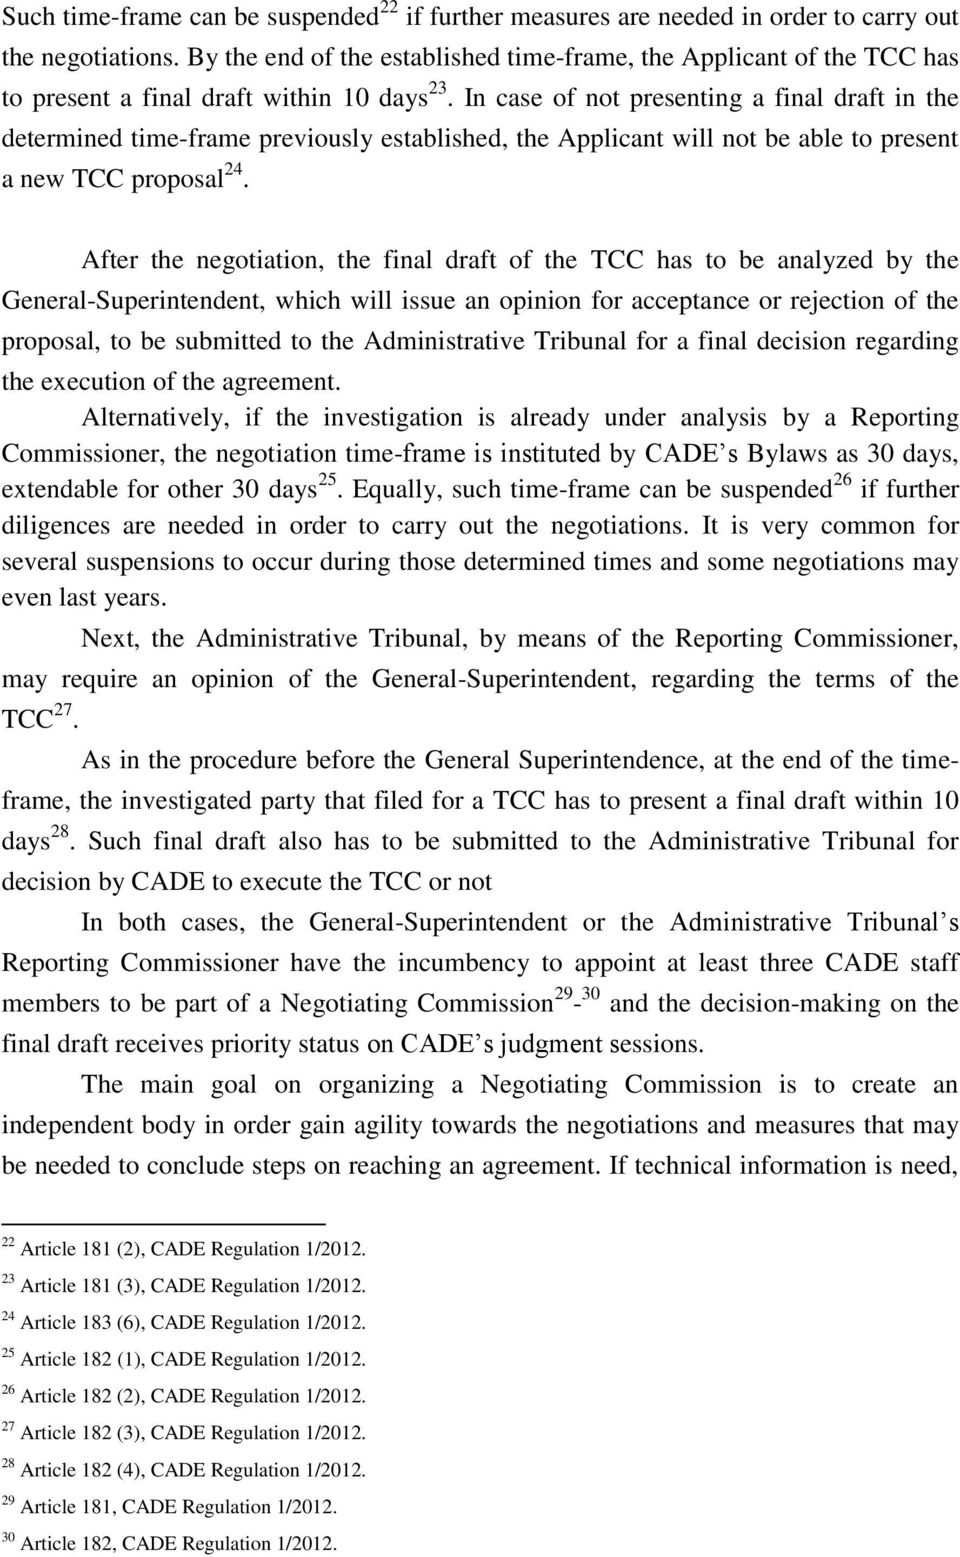 In case of not presenting a final draft in the determined time-frame previously established, the Applicant will not be able to present a new TCC proposal 24.